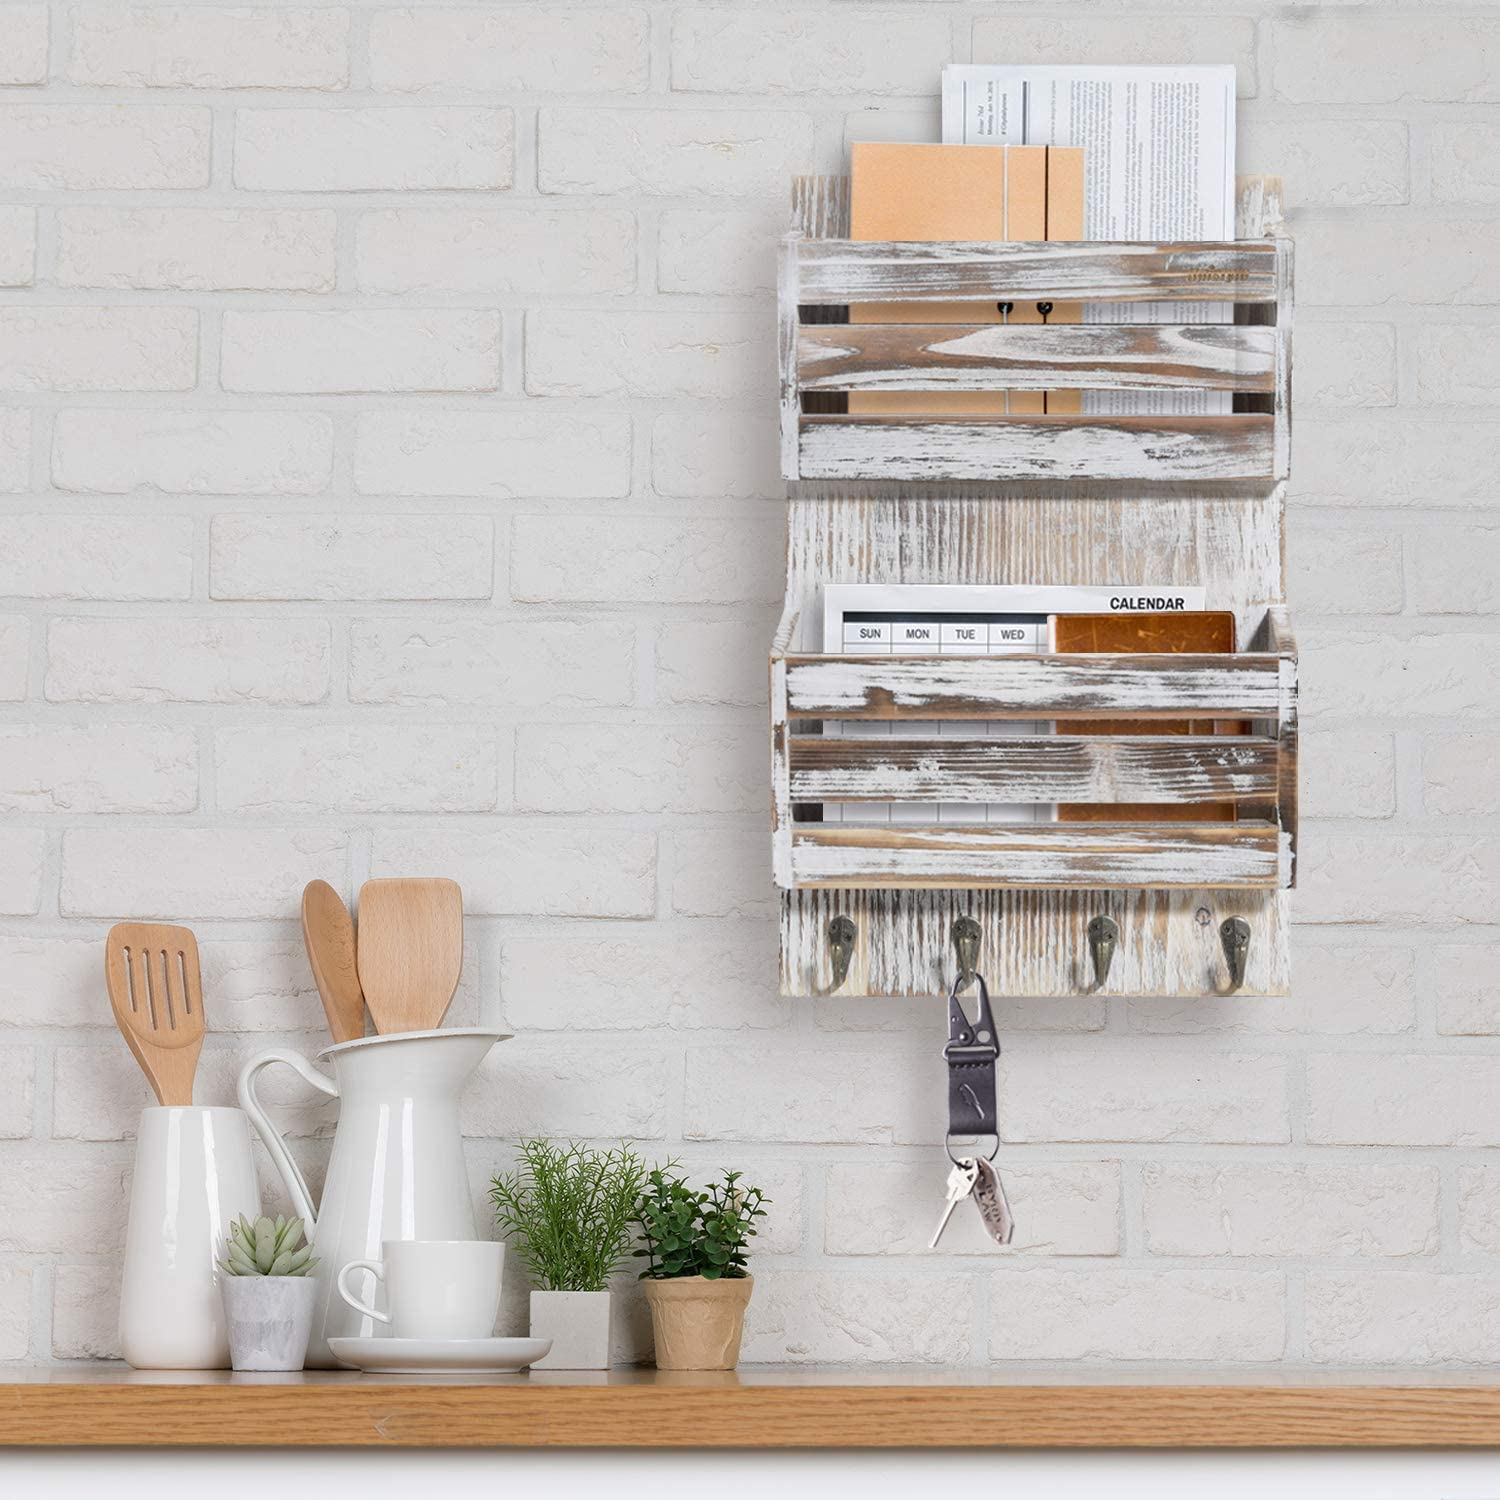 Unistyle Rustic Mail Key Holder for Wall